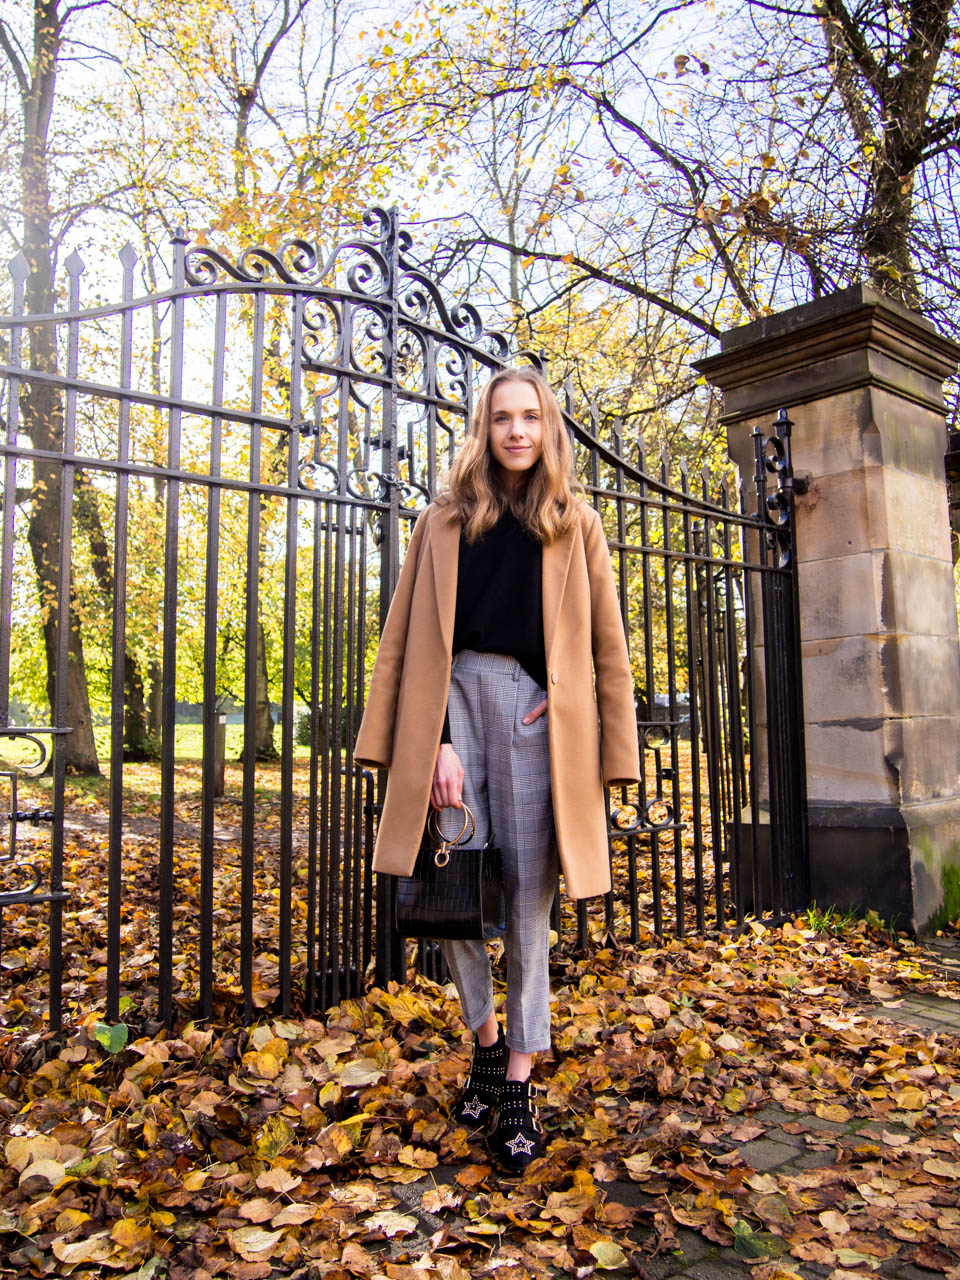 fashion-blogger-autumn-outfit-camel-coat-check-trousers-cashmere-jumper